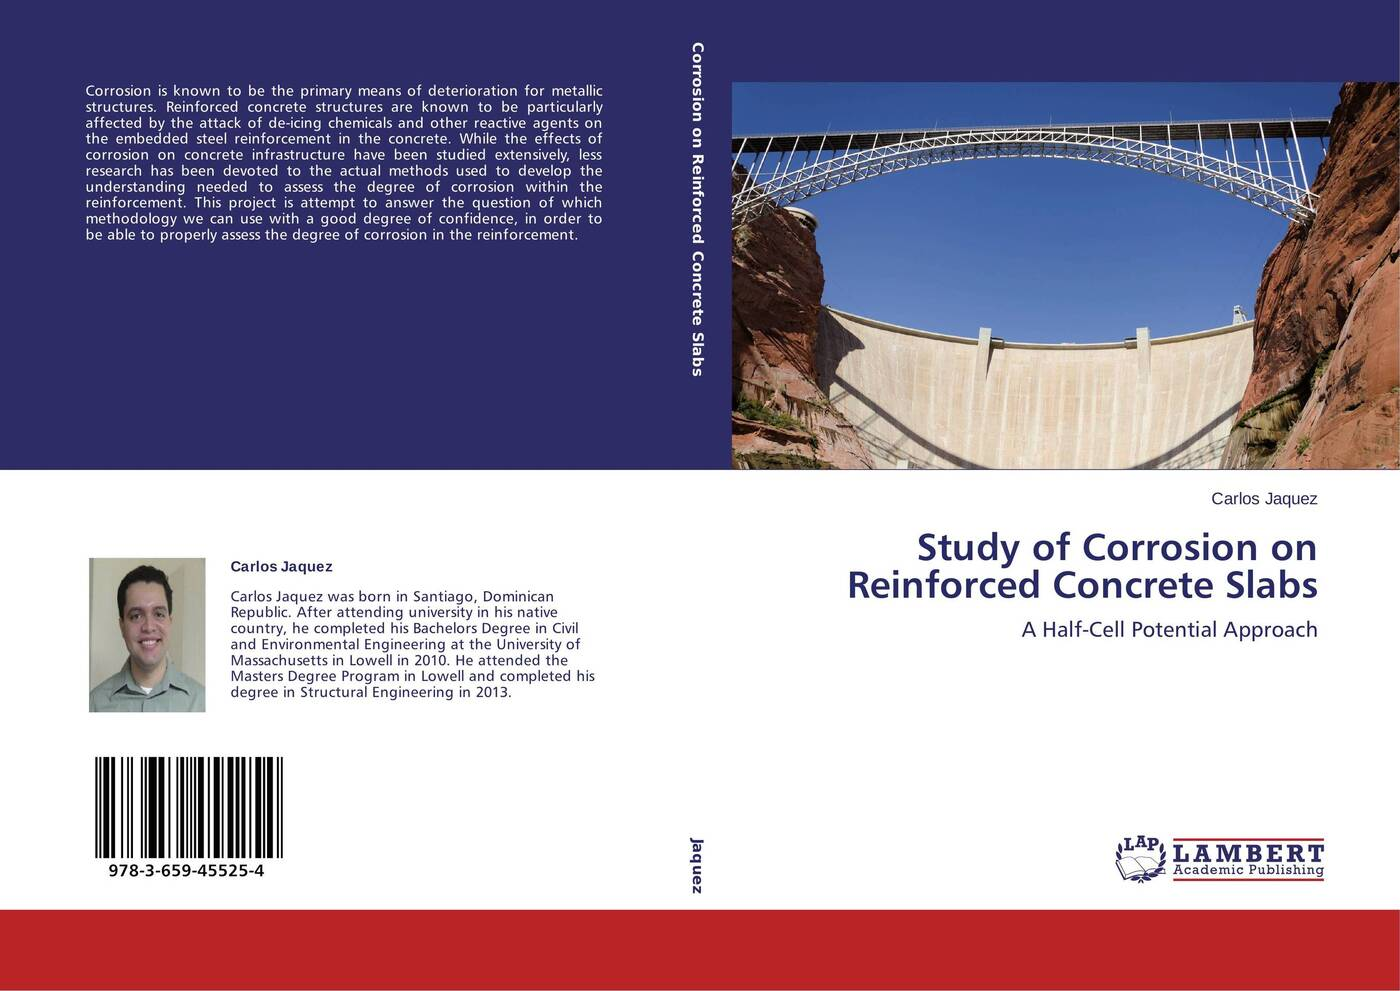 Carlos Jaquez Study of Corrosion on Reinforced Concrete Slabs the corrosion of hot dip galvanized rebars in concrete